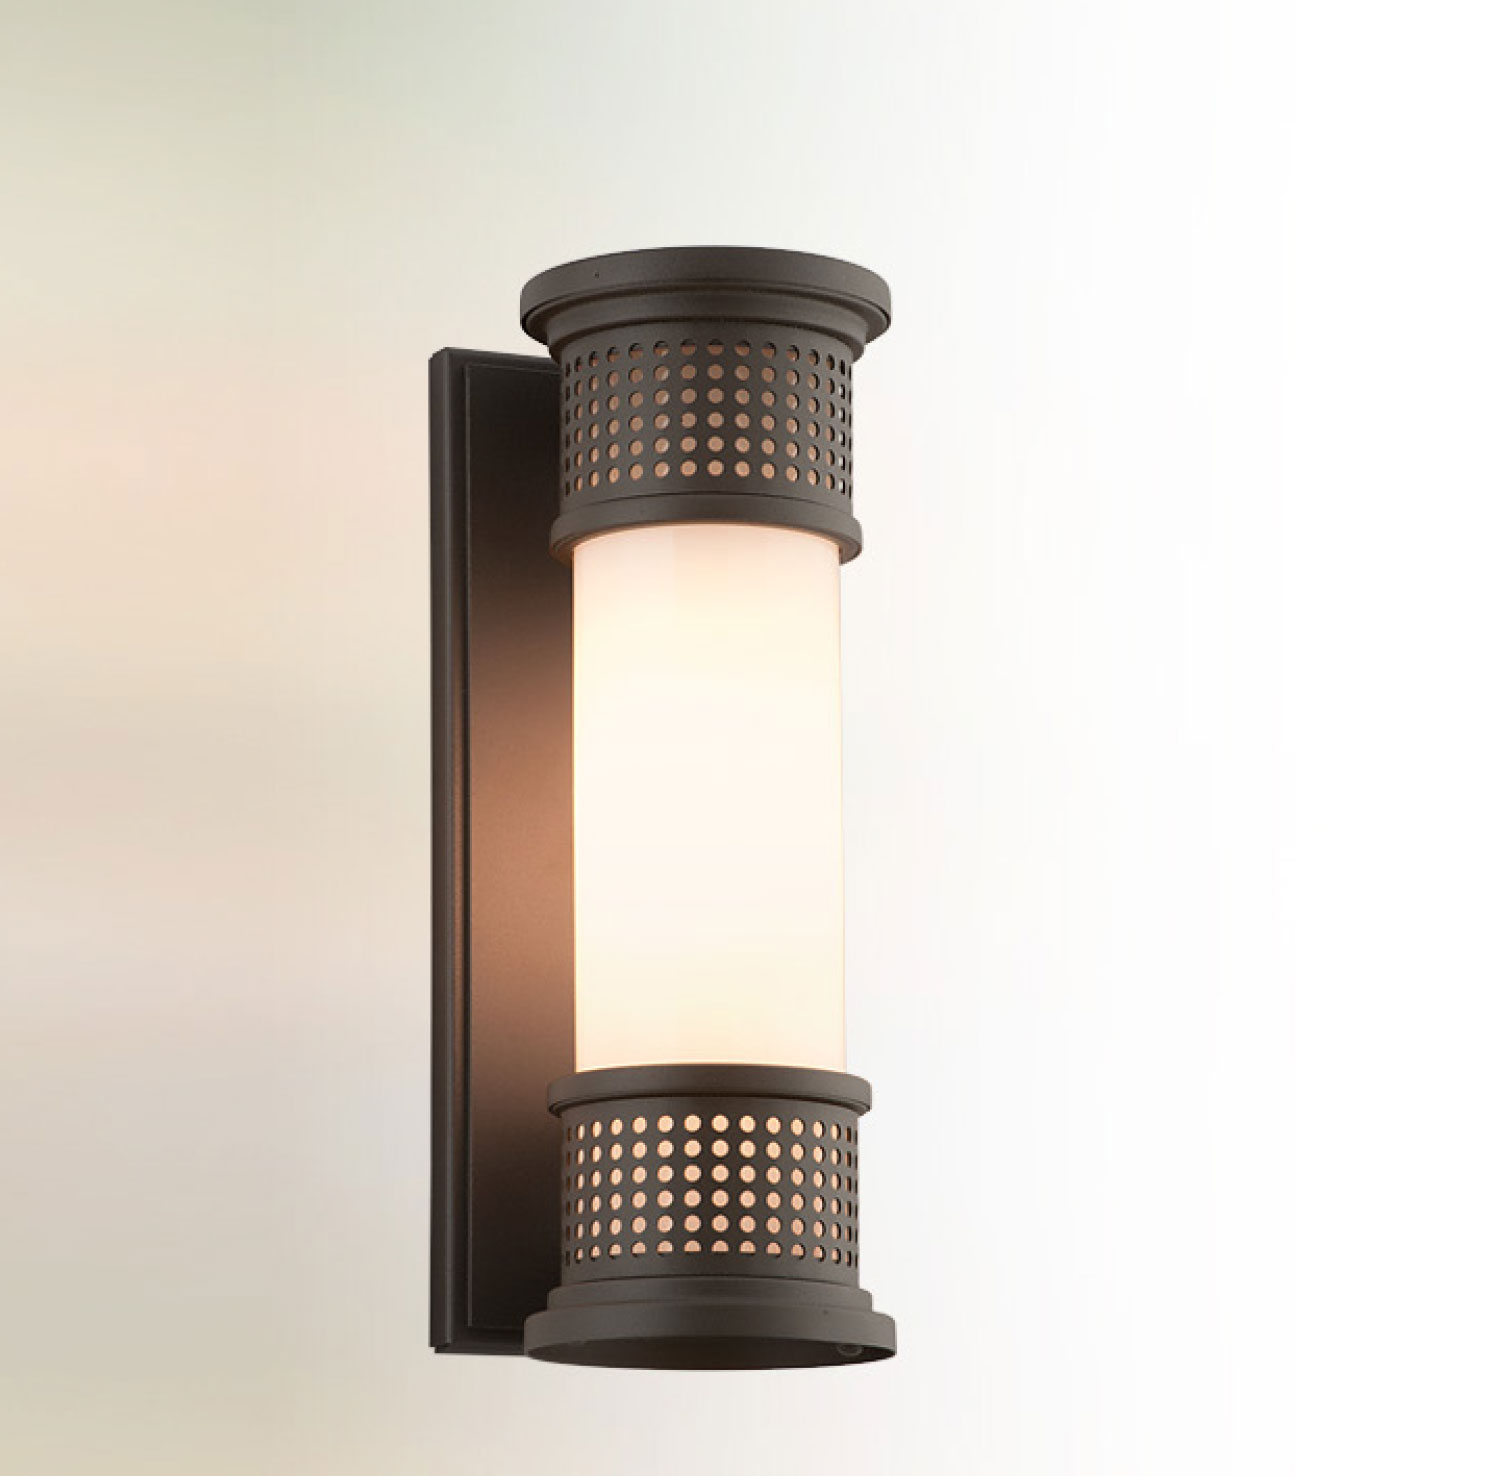 Fluorescent Exterior Wall Lights : Mcqueen Fluorescent Exterior Wall Sconce by Troy Lighting BF4671